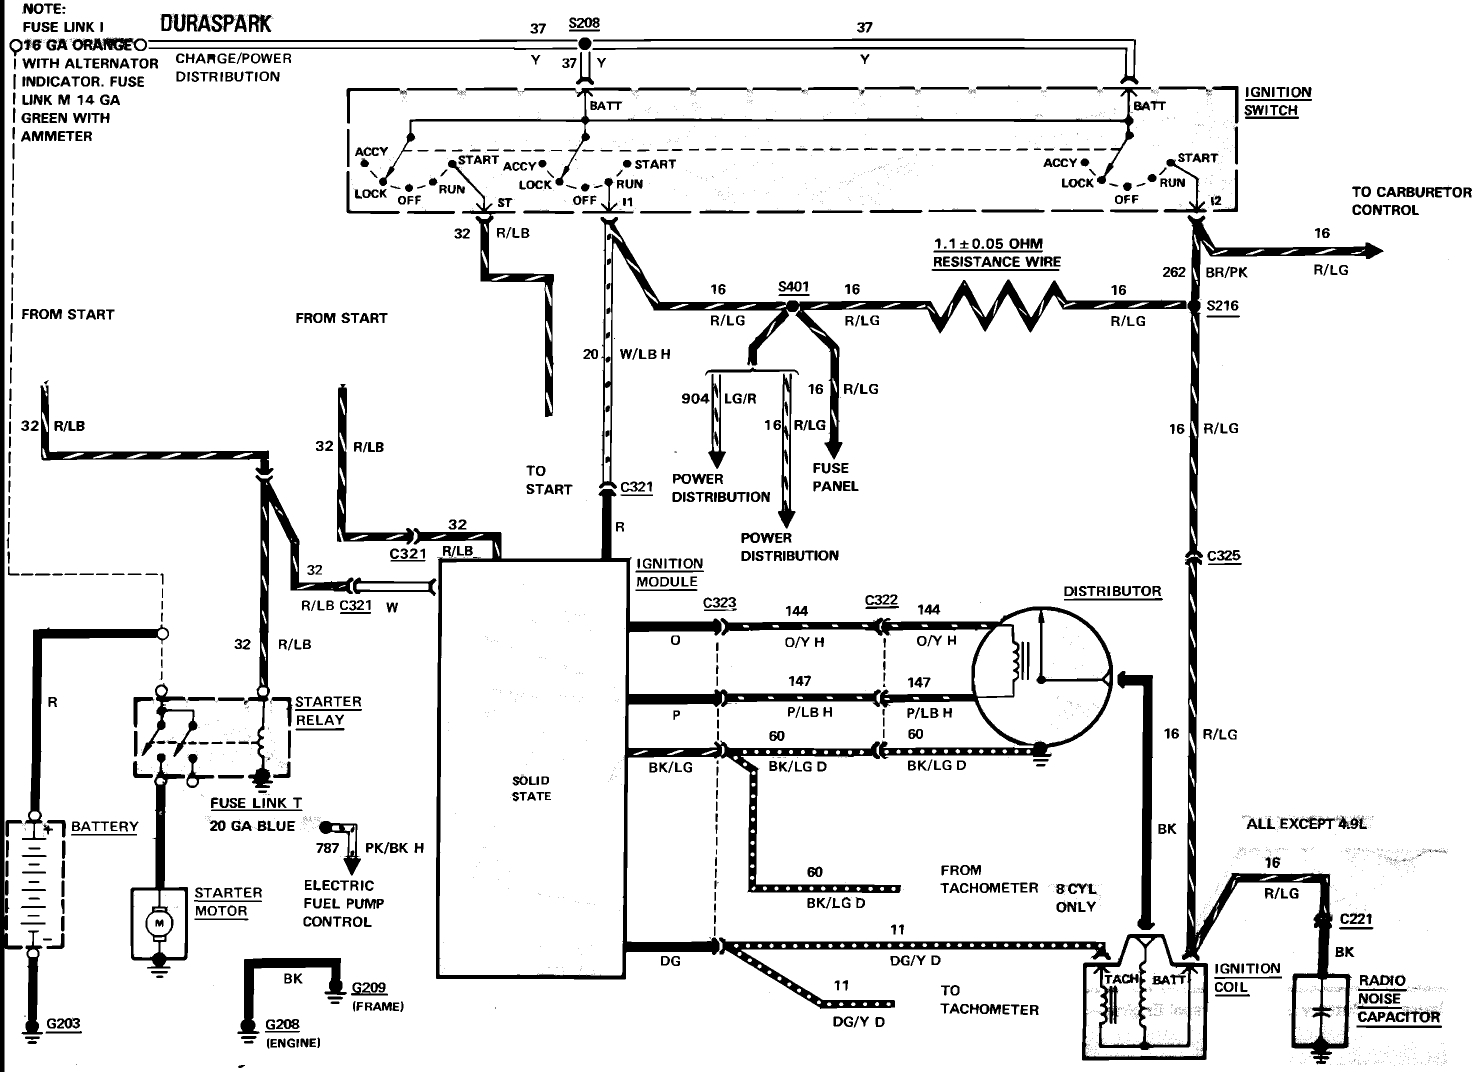 72 f250 wiring diagram only 1989 ford f150 ignition wiring diagram | free wiring diagram